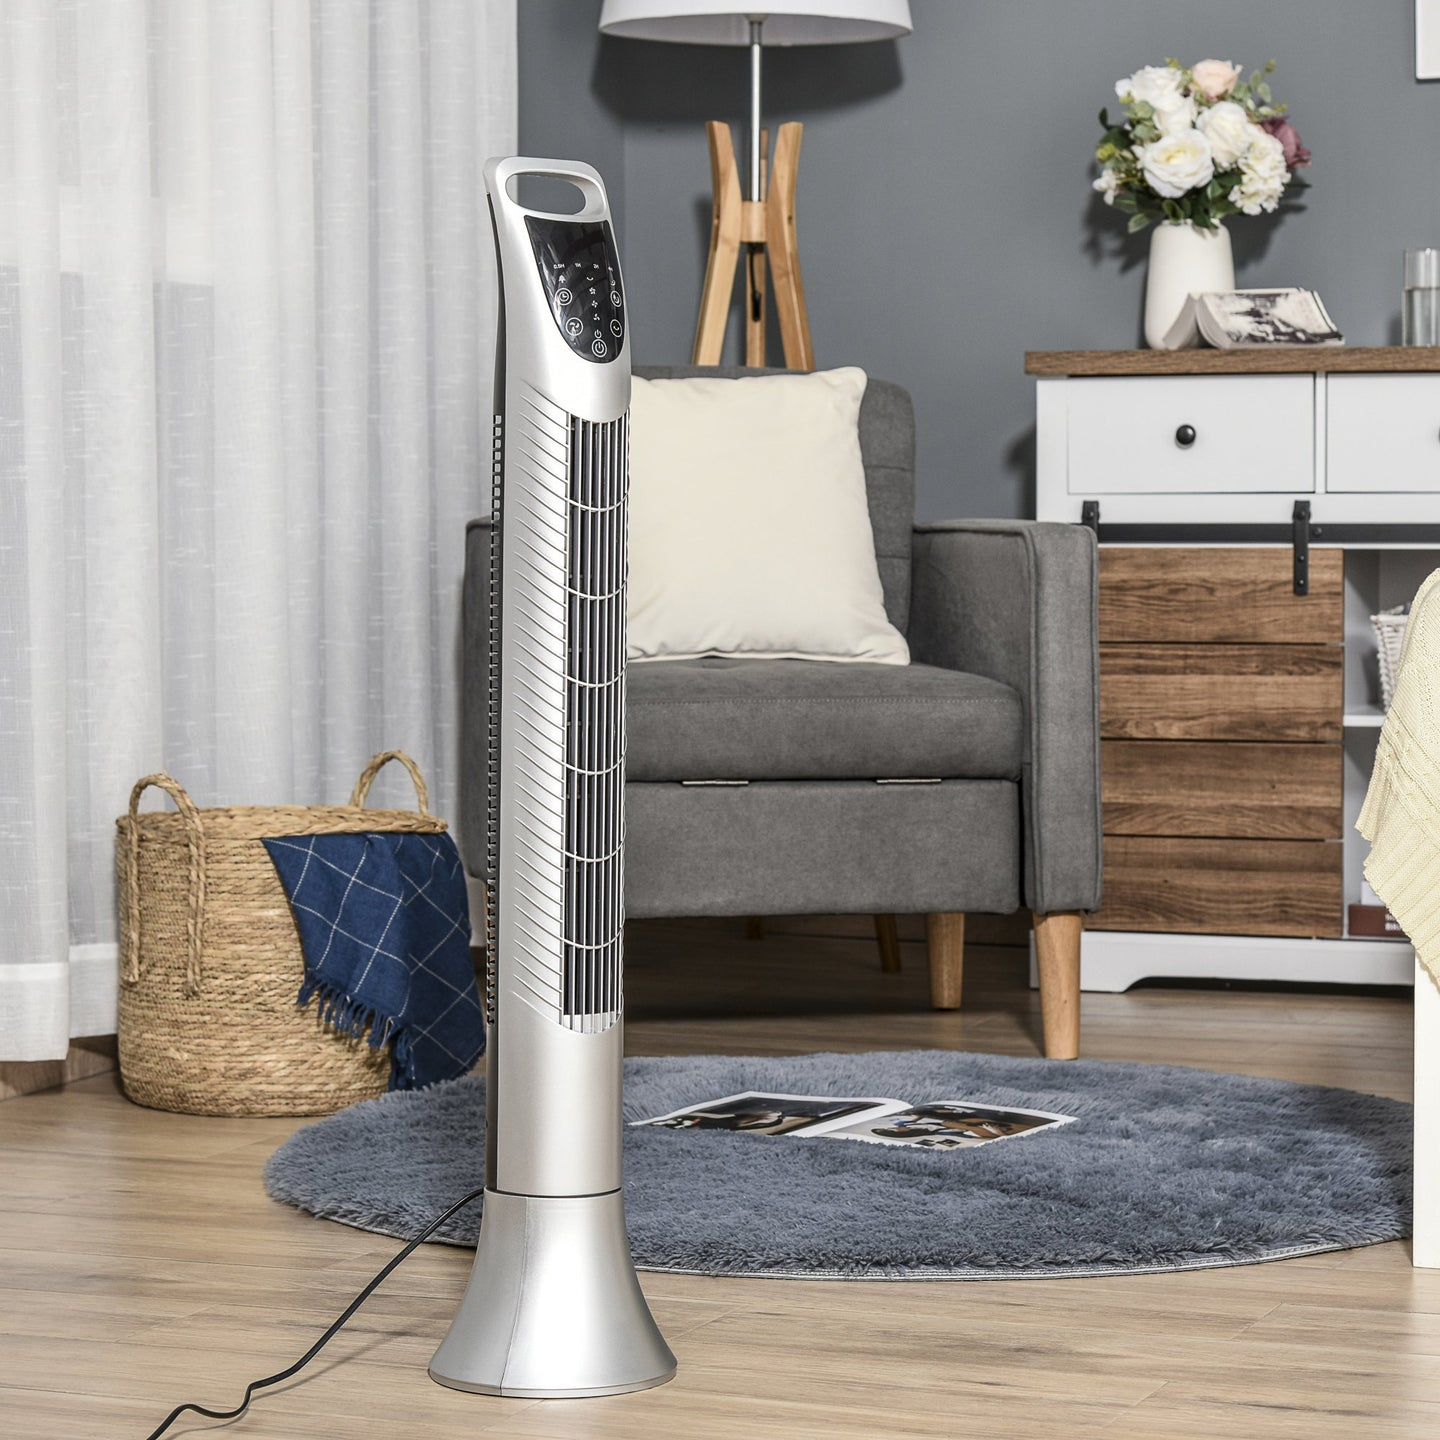 HOMCOM Freestanding Tower Fan, 3 Speed 3 Mode, 7.5h Timer, 70 Degree Oscillation, LED Panel, 5M Remote Controller, Silver